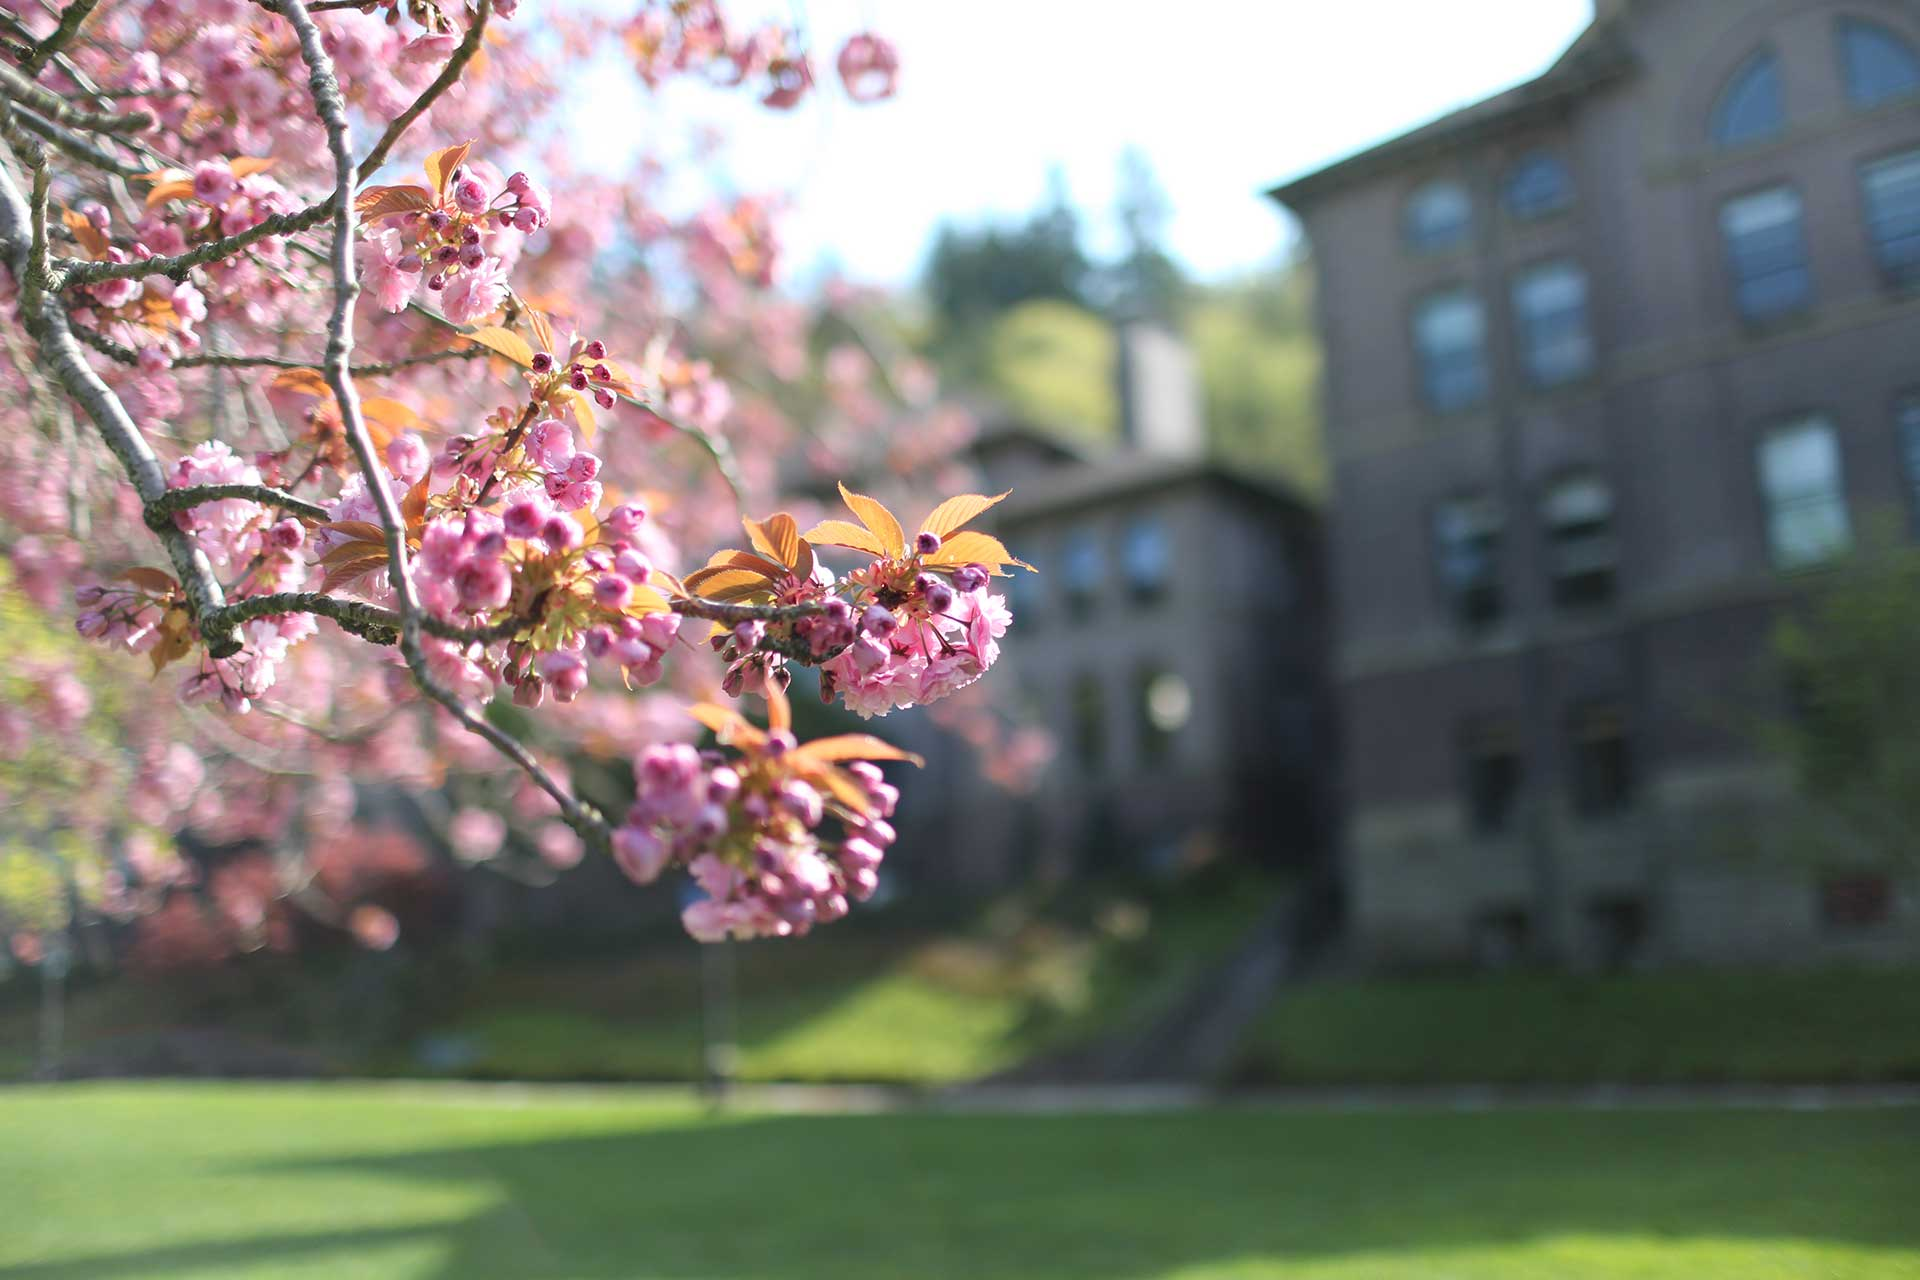 Cherry blossoms in the foreground, a nicely landscaped campus in the background